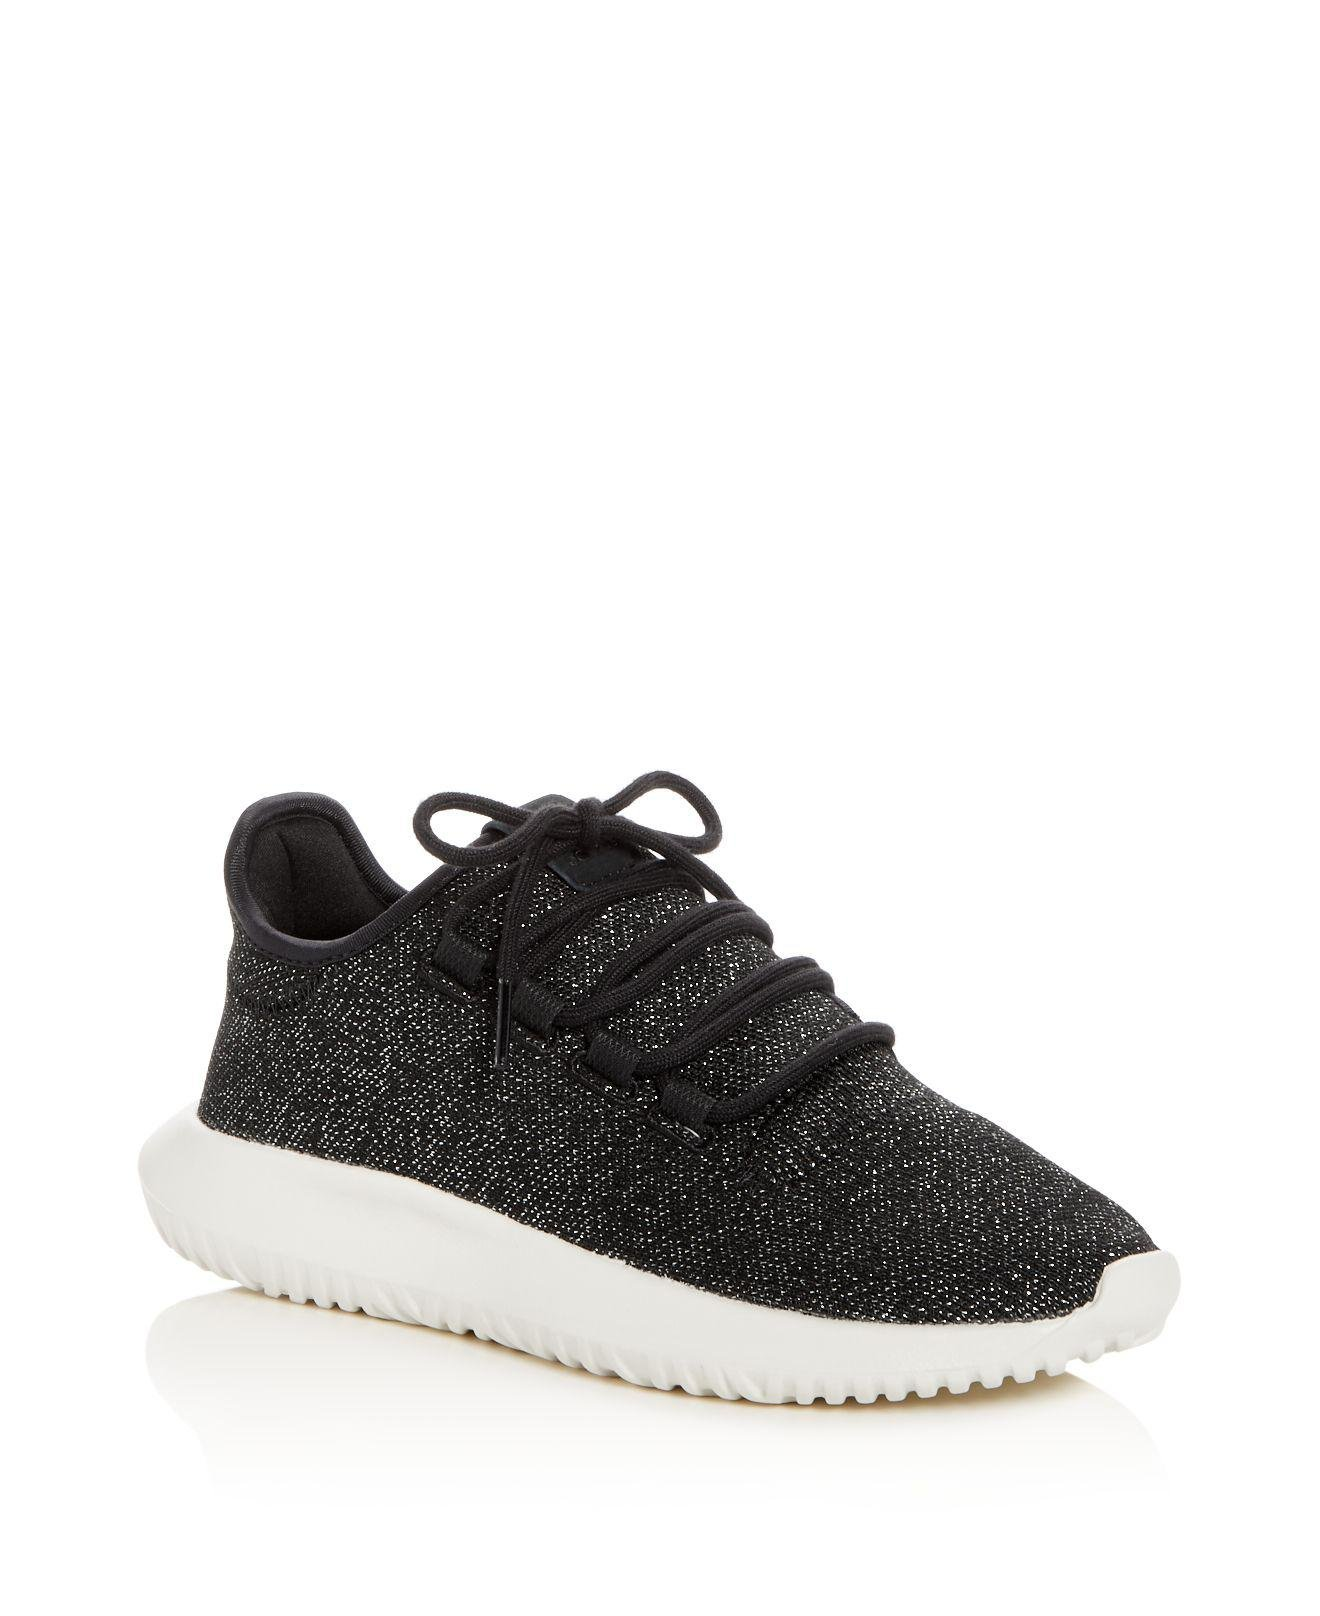 Adidas Tubular Shadow Damen Grau